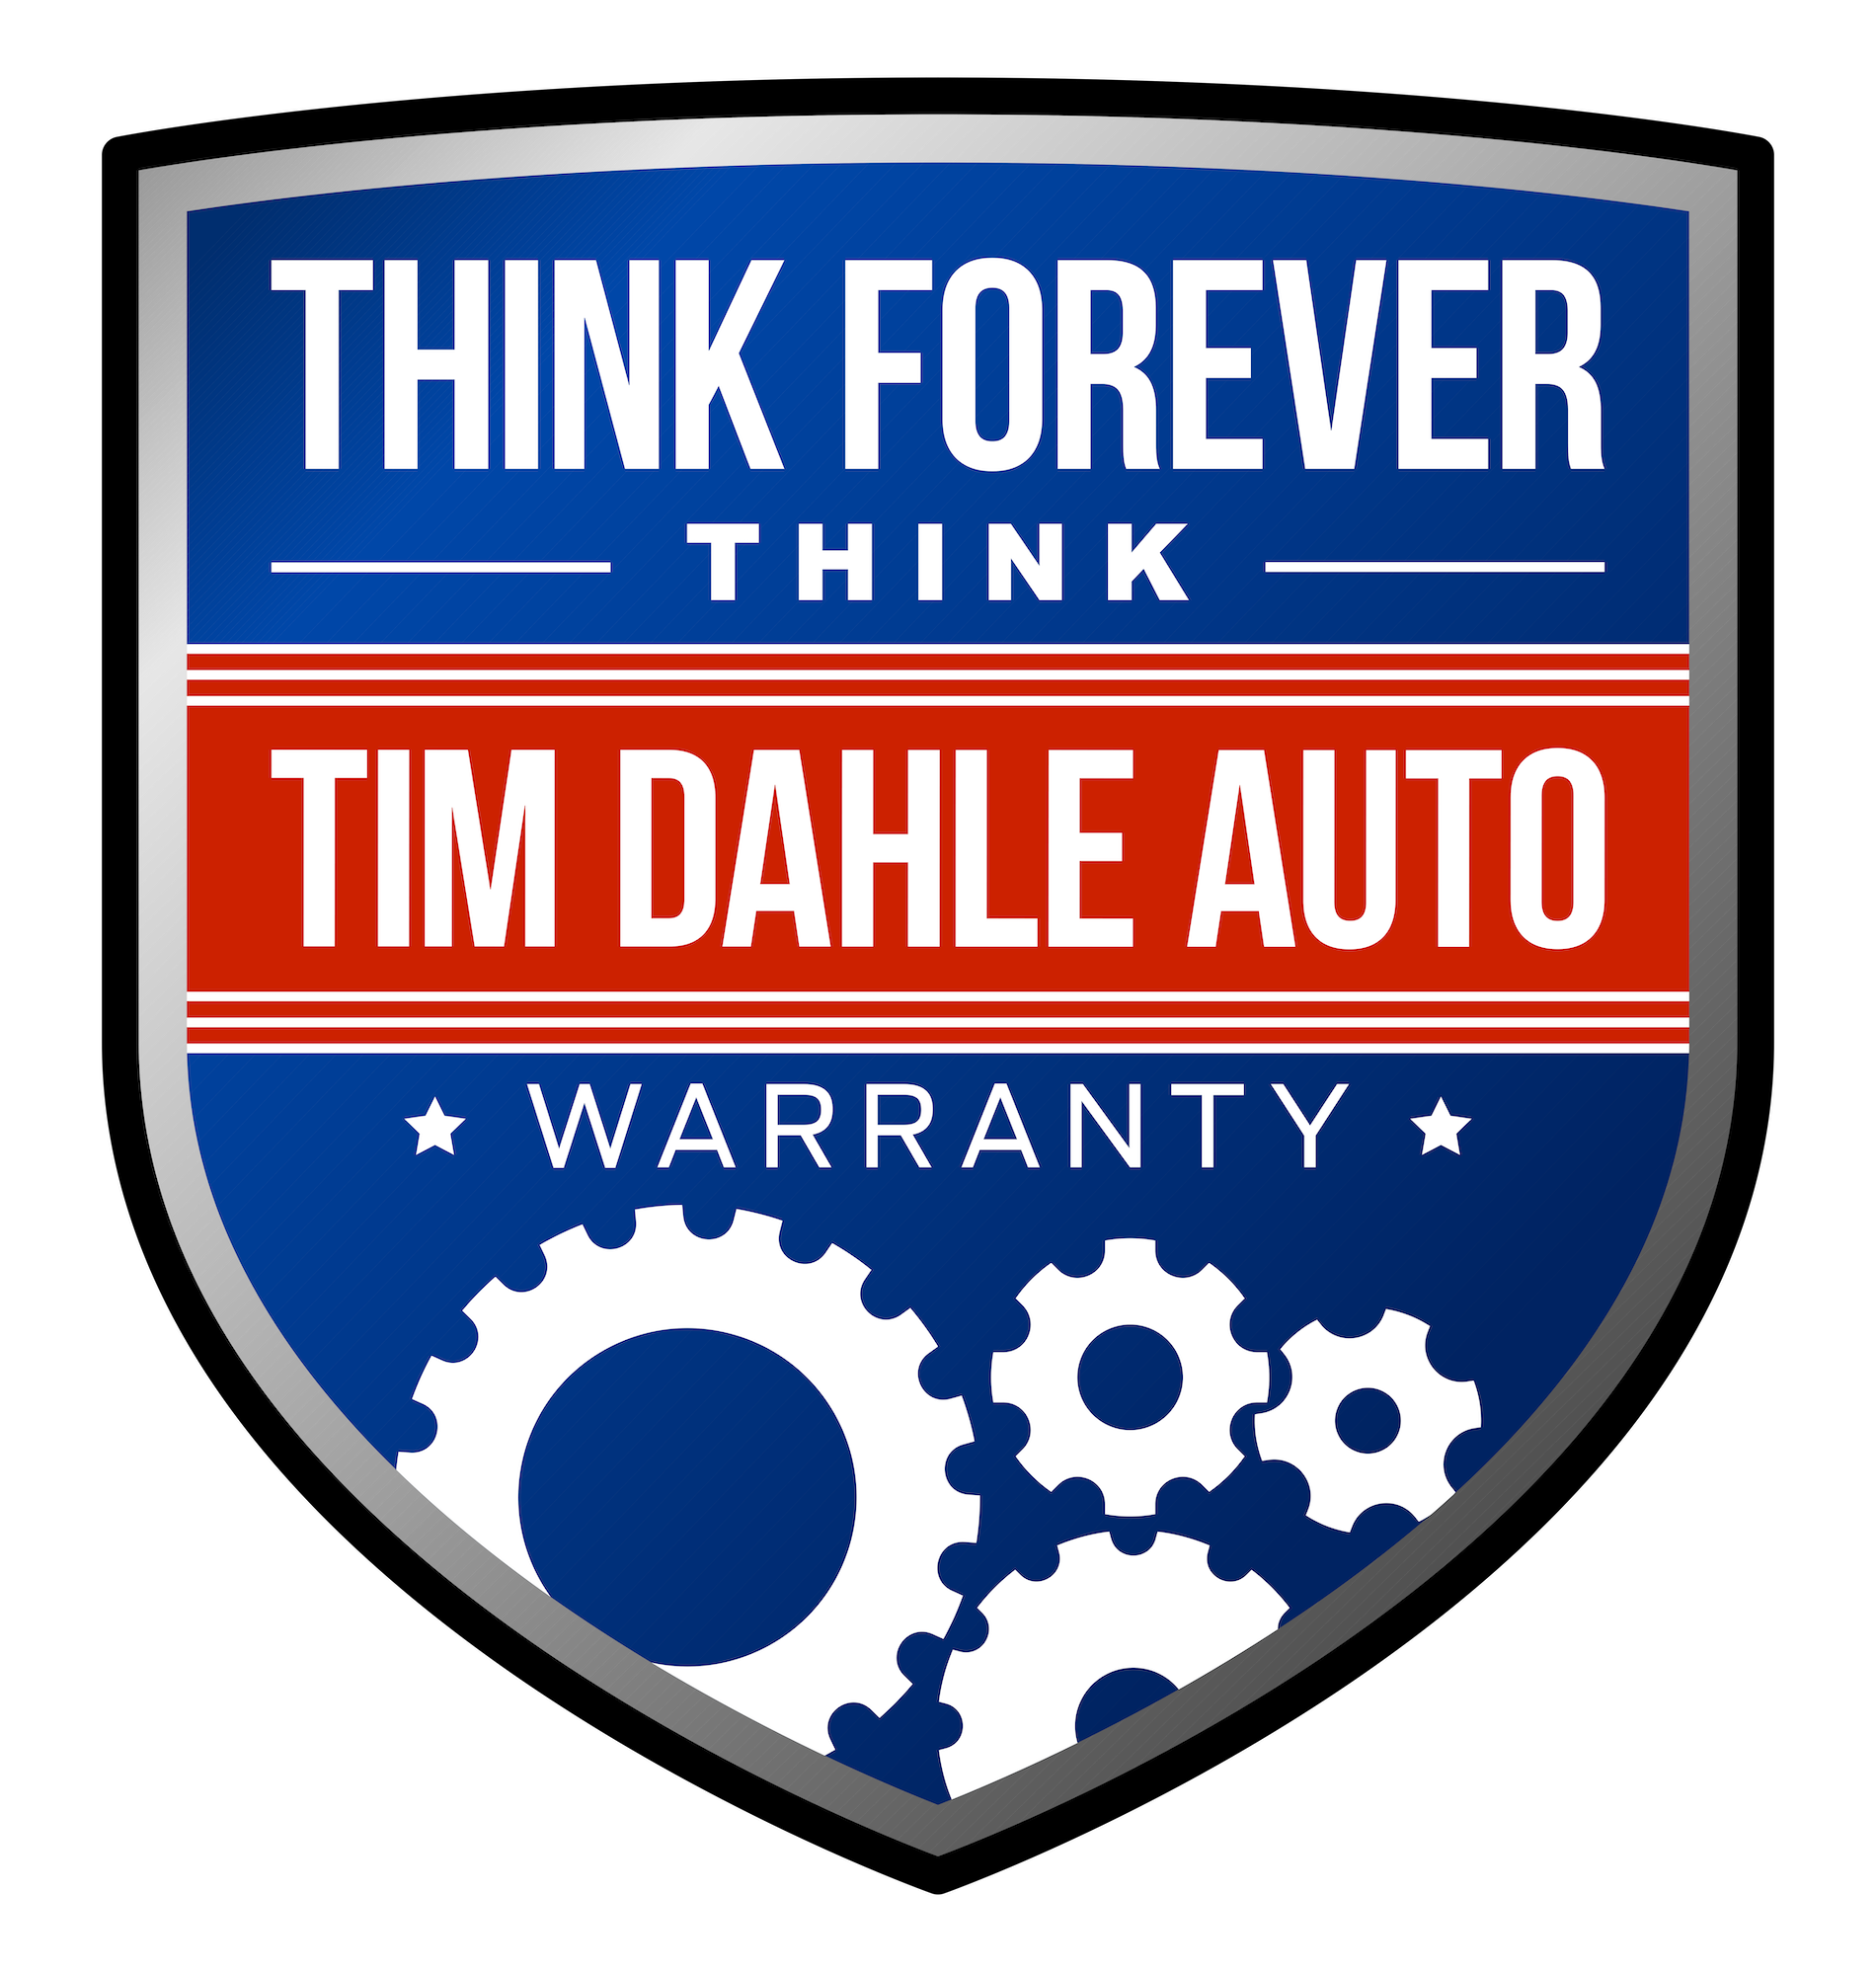 Think Forever - Think Tim Dahle Auto Warranty